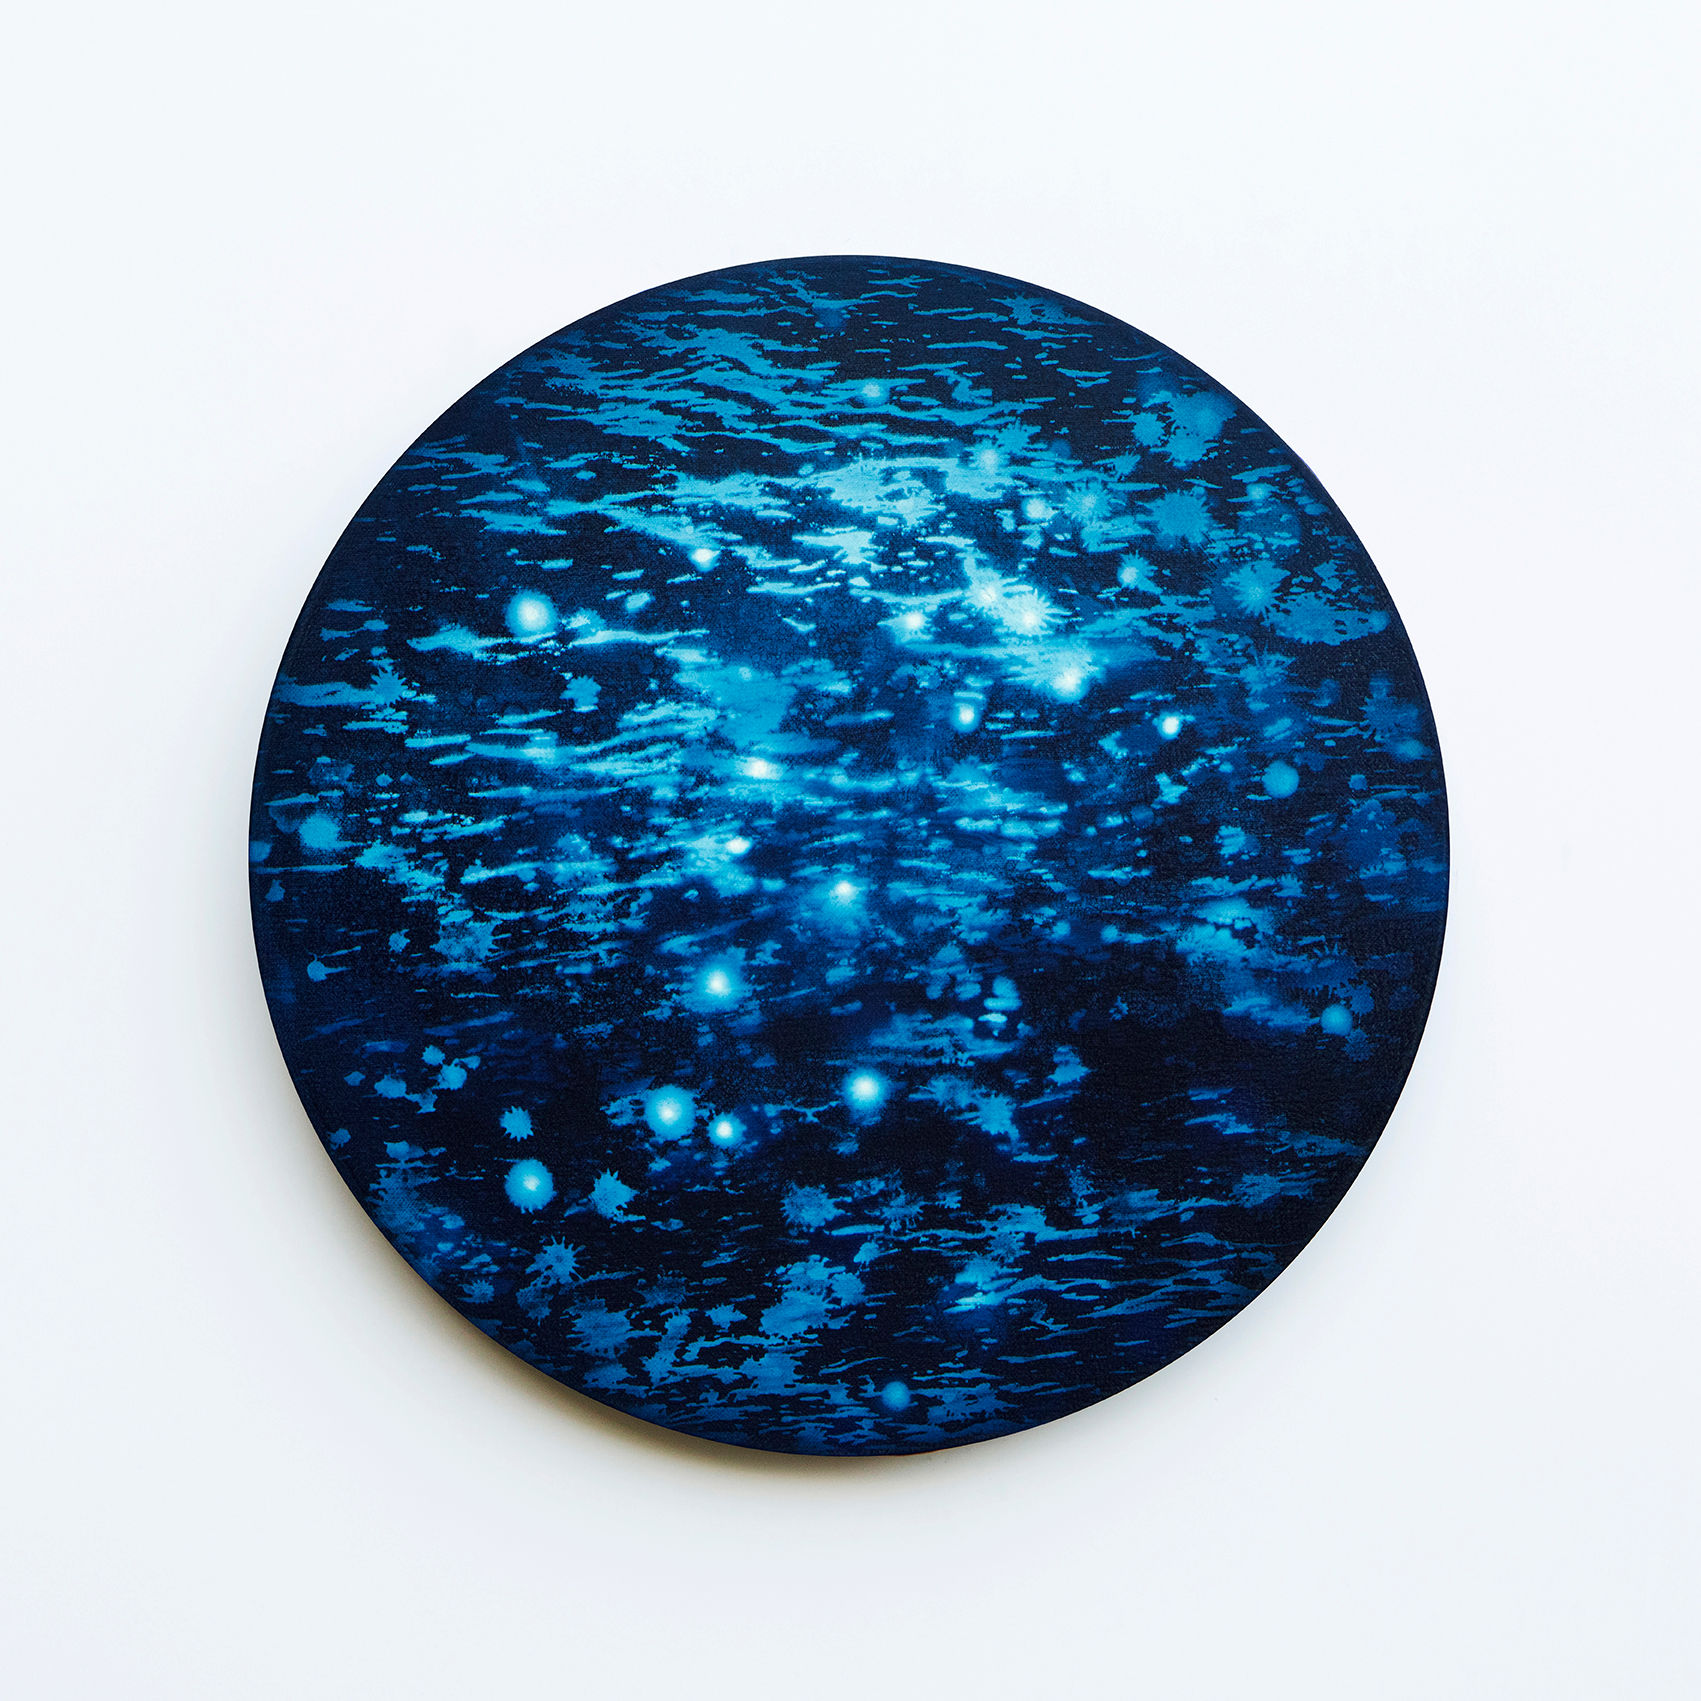 WATERSCAPE_내 안의 바깥 32, Diameter 40cm, Traditional pigment, water-print, water-drawing on canvas, 2018